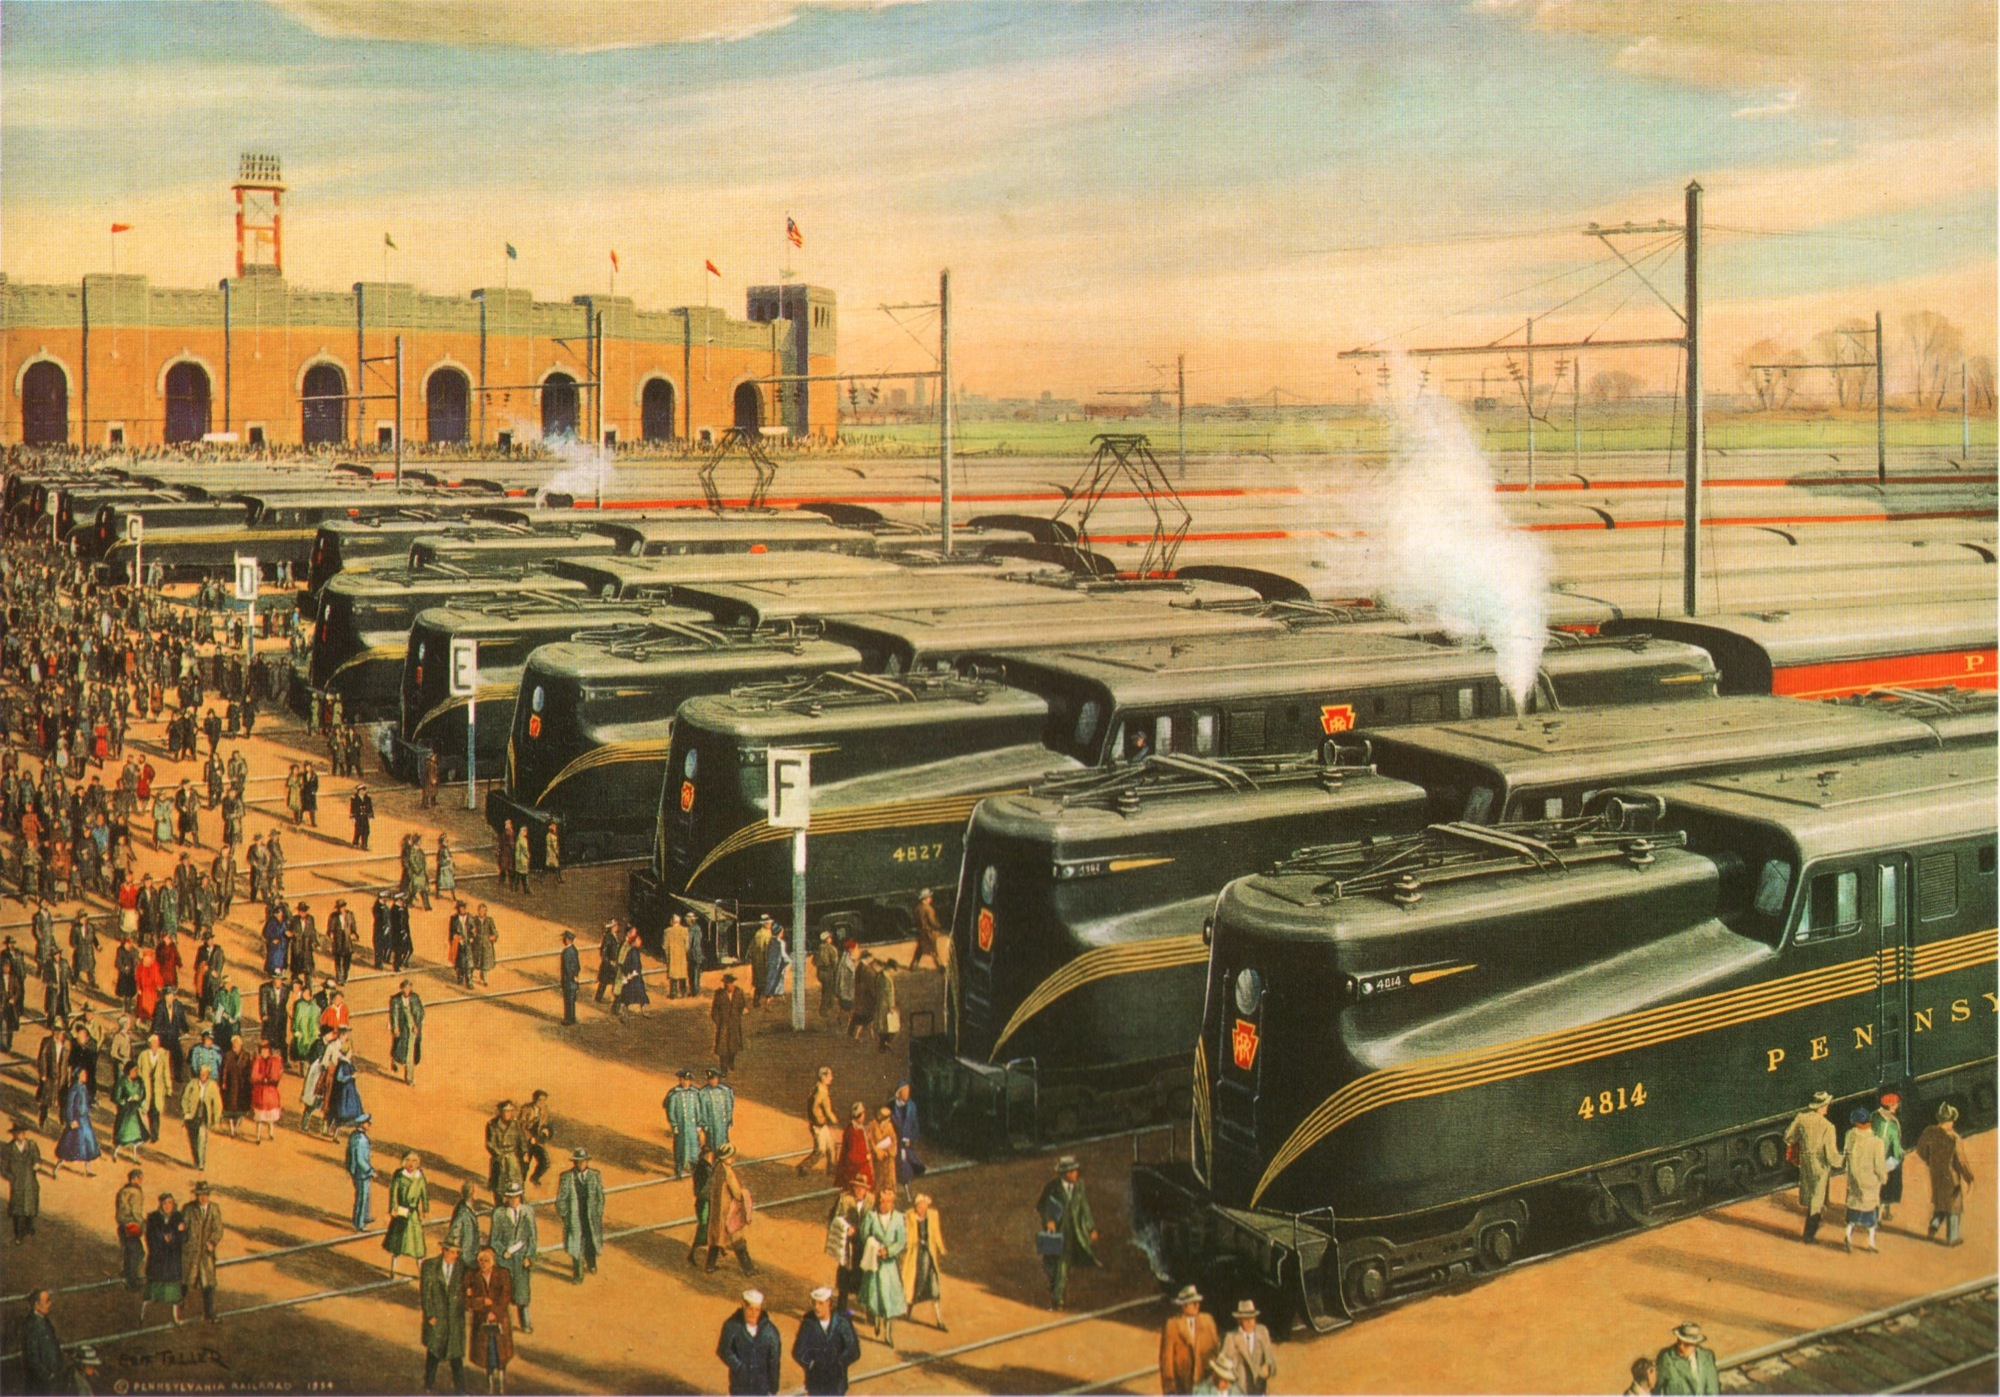 "Grif Teller's ""Mass Transportation"" circa 1955 depicts the Army Navy game trains cued up in preparation for the flood of spectators returning from the annual Army Navy Classic. The image illustrates the massive commitment the PRR made to provide game day service ranging from the allocation of equipment to the conversion of a major freight terminal into a temporary passenger station all for a one a day event!"